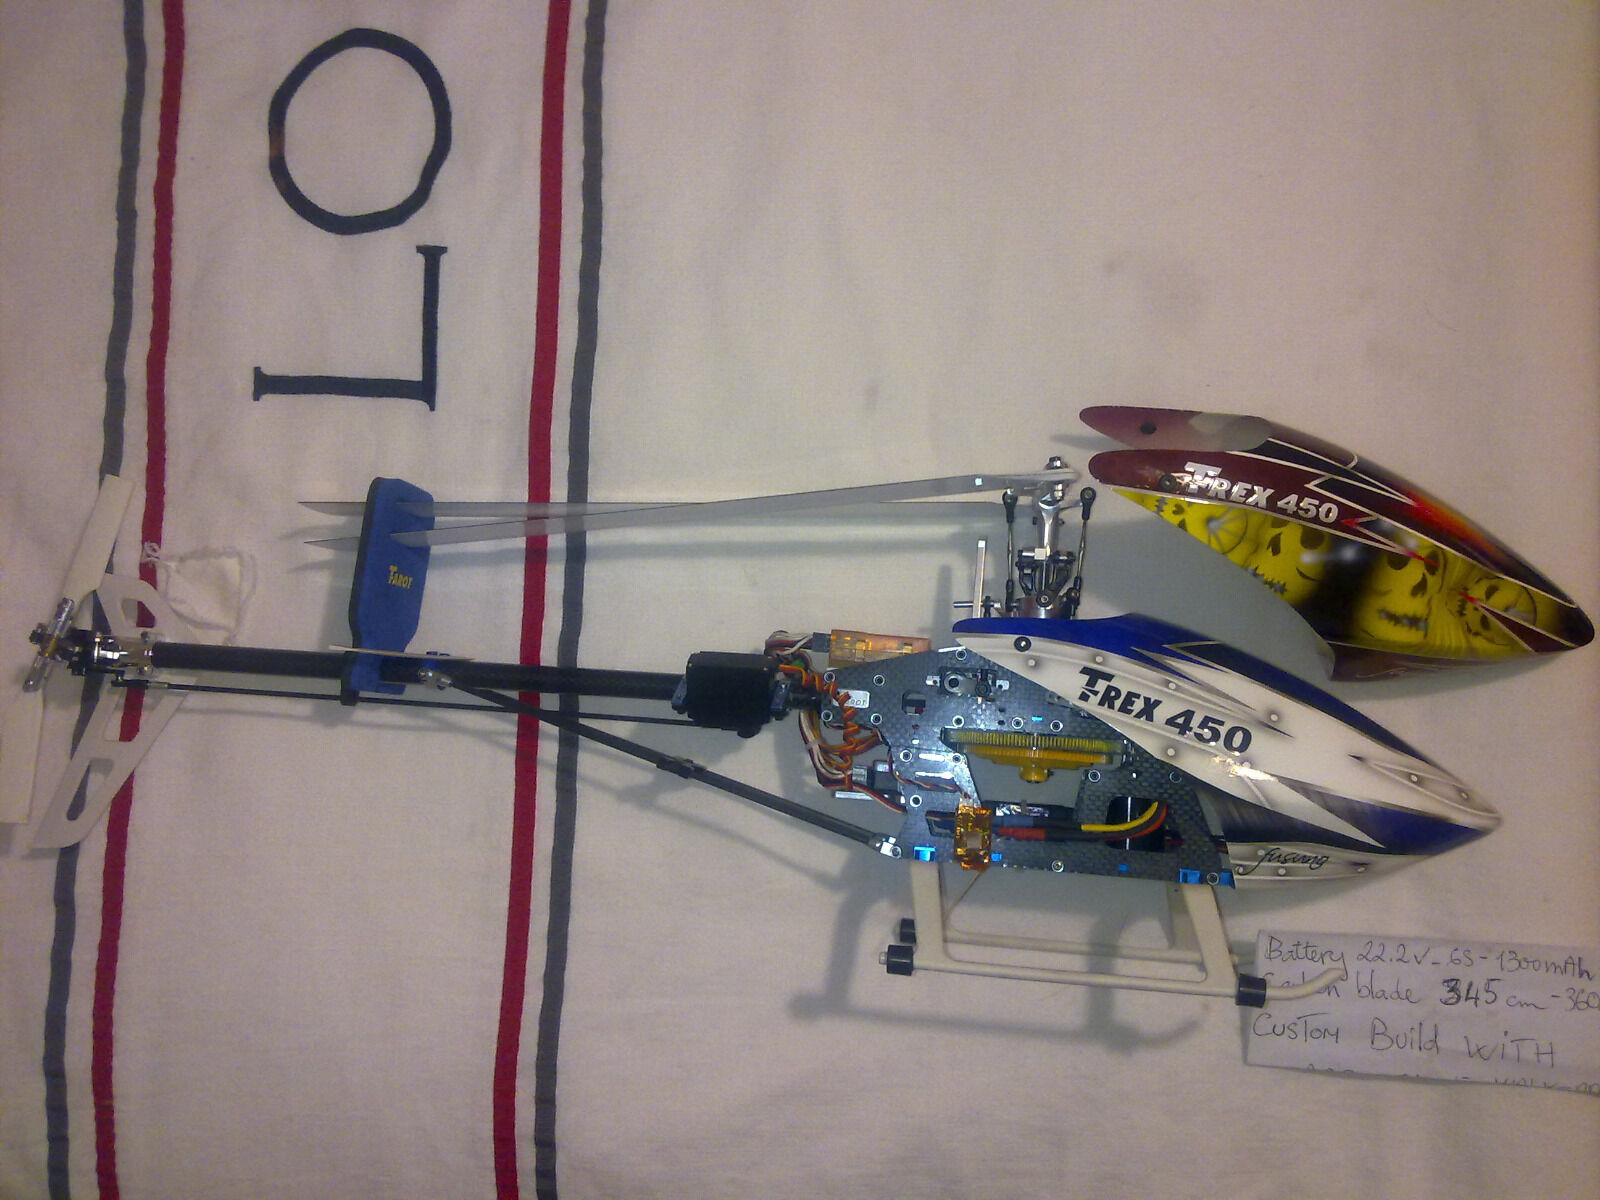 Align Clone 450 Sport (FBL) with full aluminium upgrade - Most ready to fly